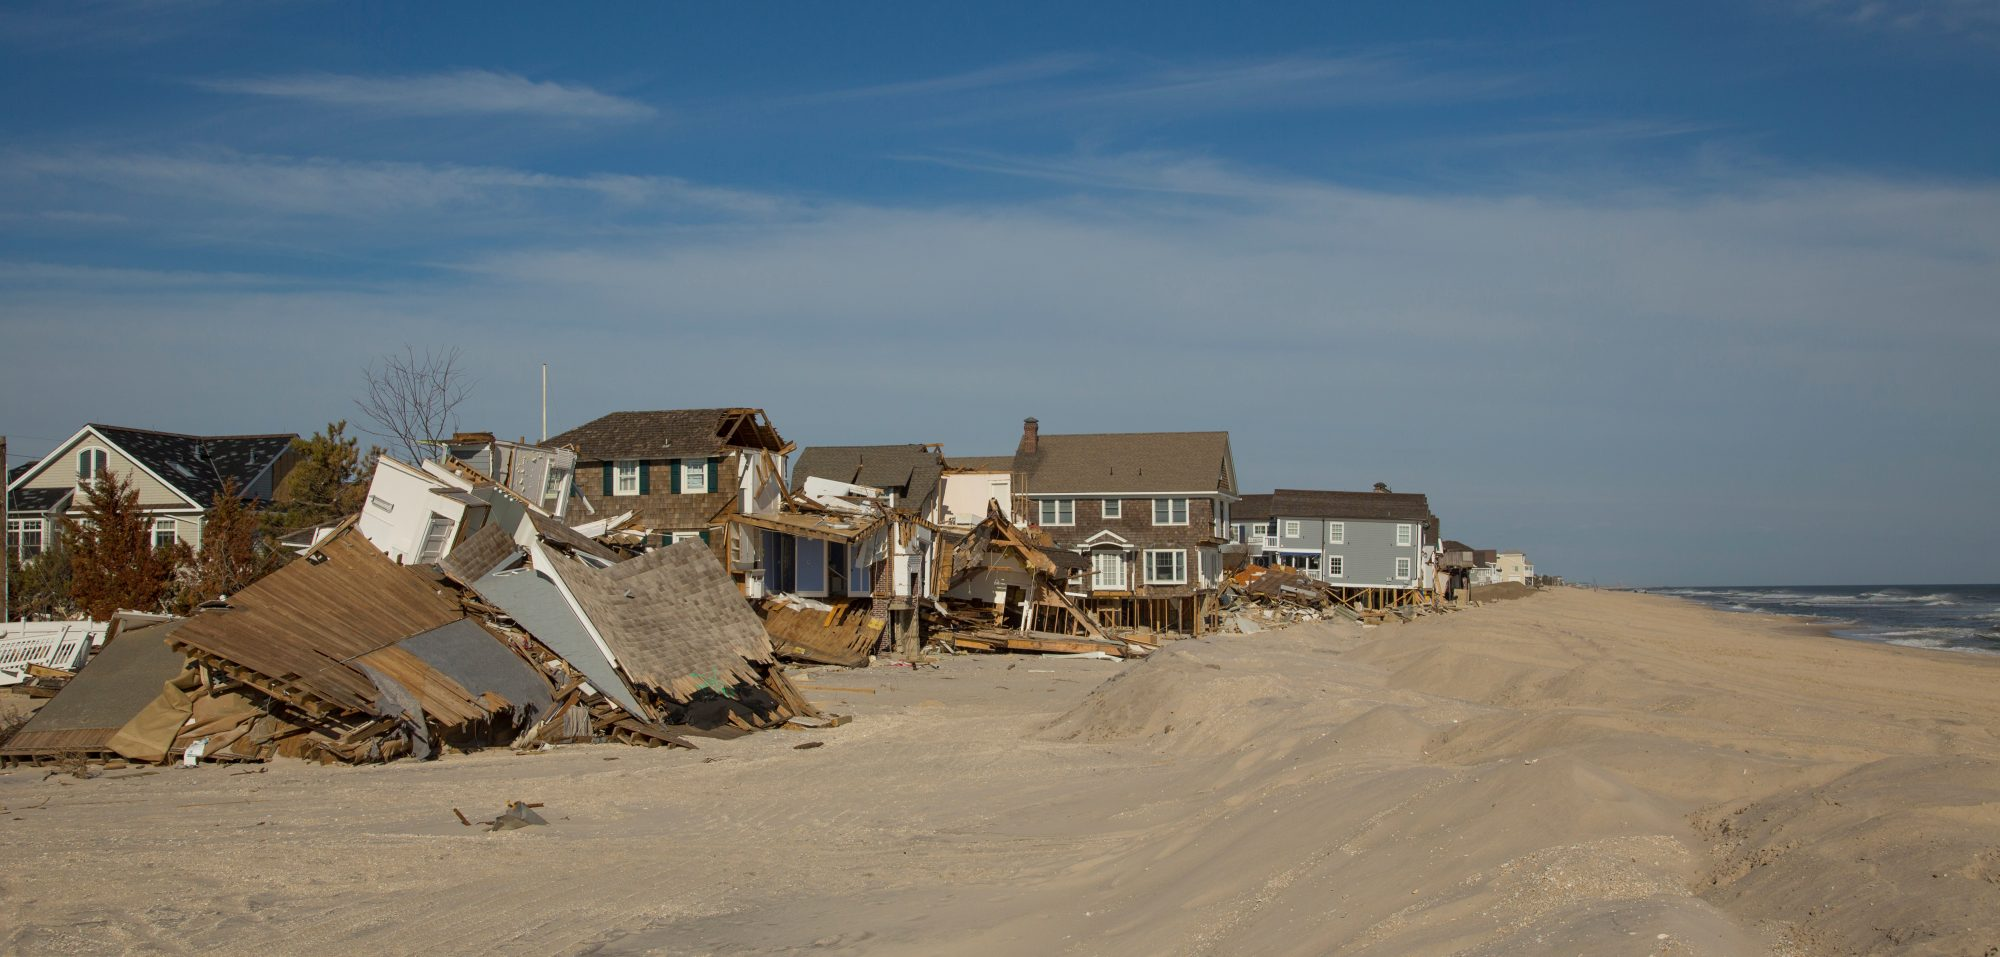 Hurricane Sandy, also known as Superstorm Sandy, tore across the northeastern United States in late October 2012, causing widespread damage along the coast. Though it had weakened to a post-tropical cyclone before it made landfall in New Jersey, its storm surges and high winds caused many deaths and billions of dollars in damages. Cost: $50 billion